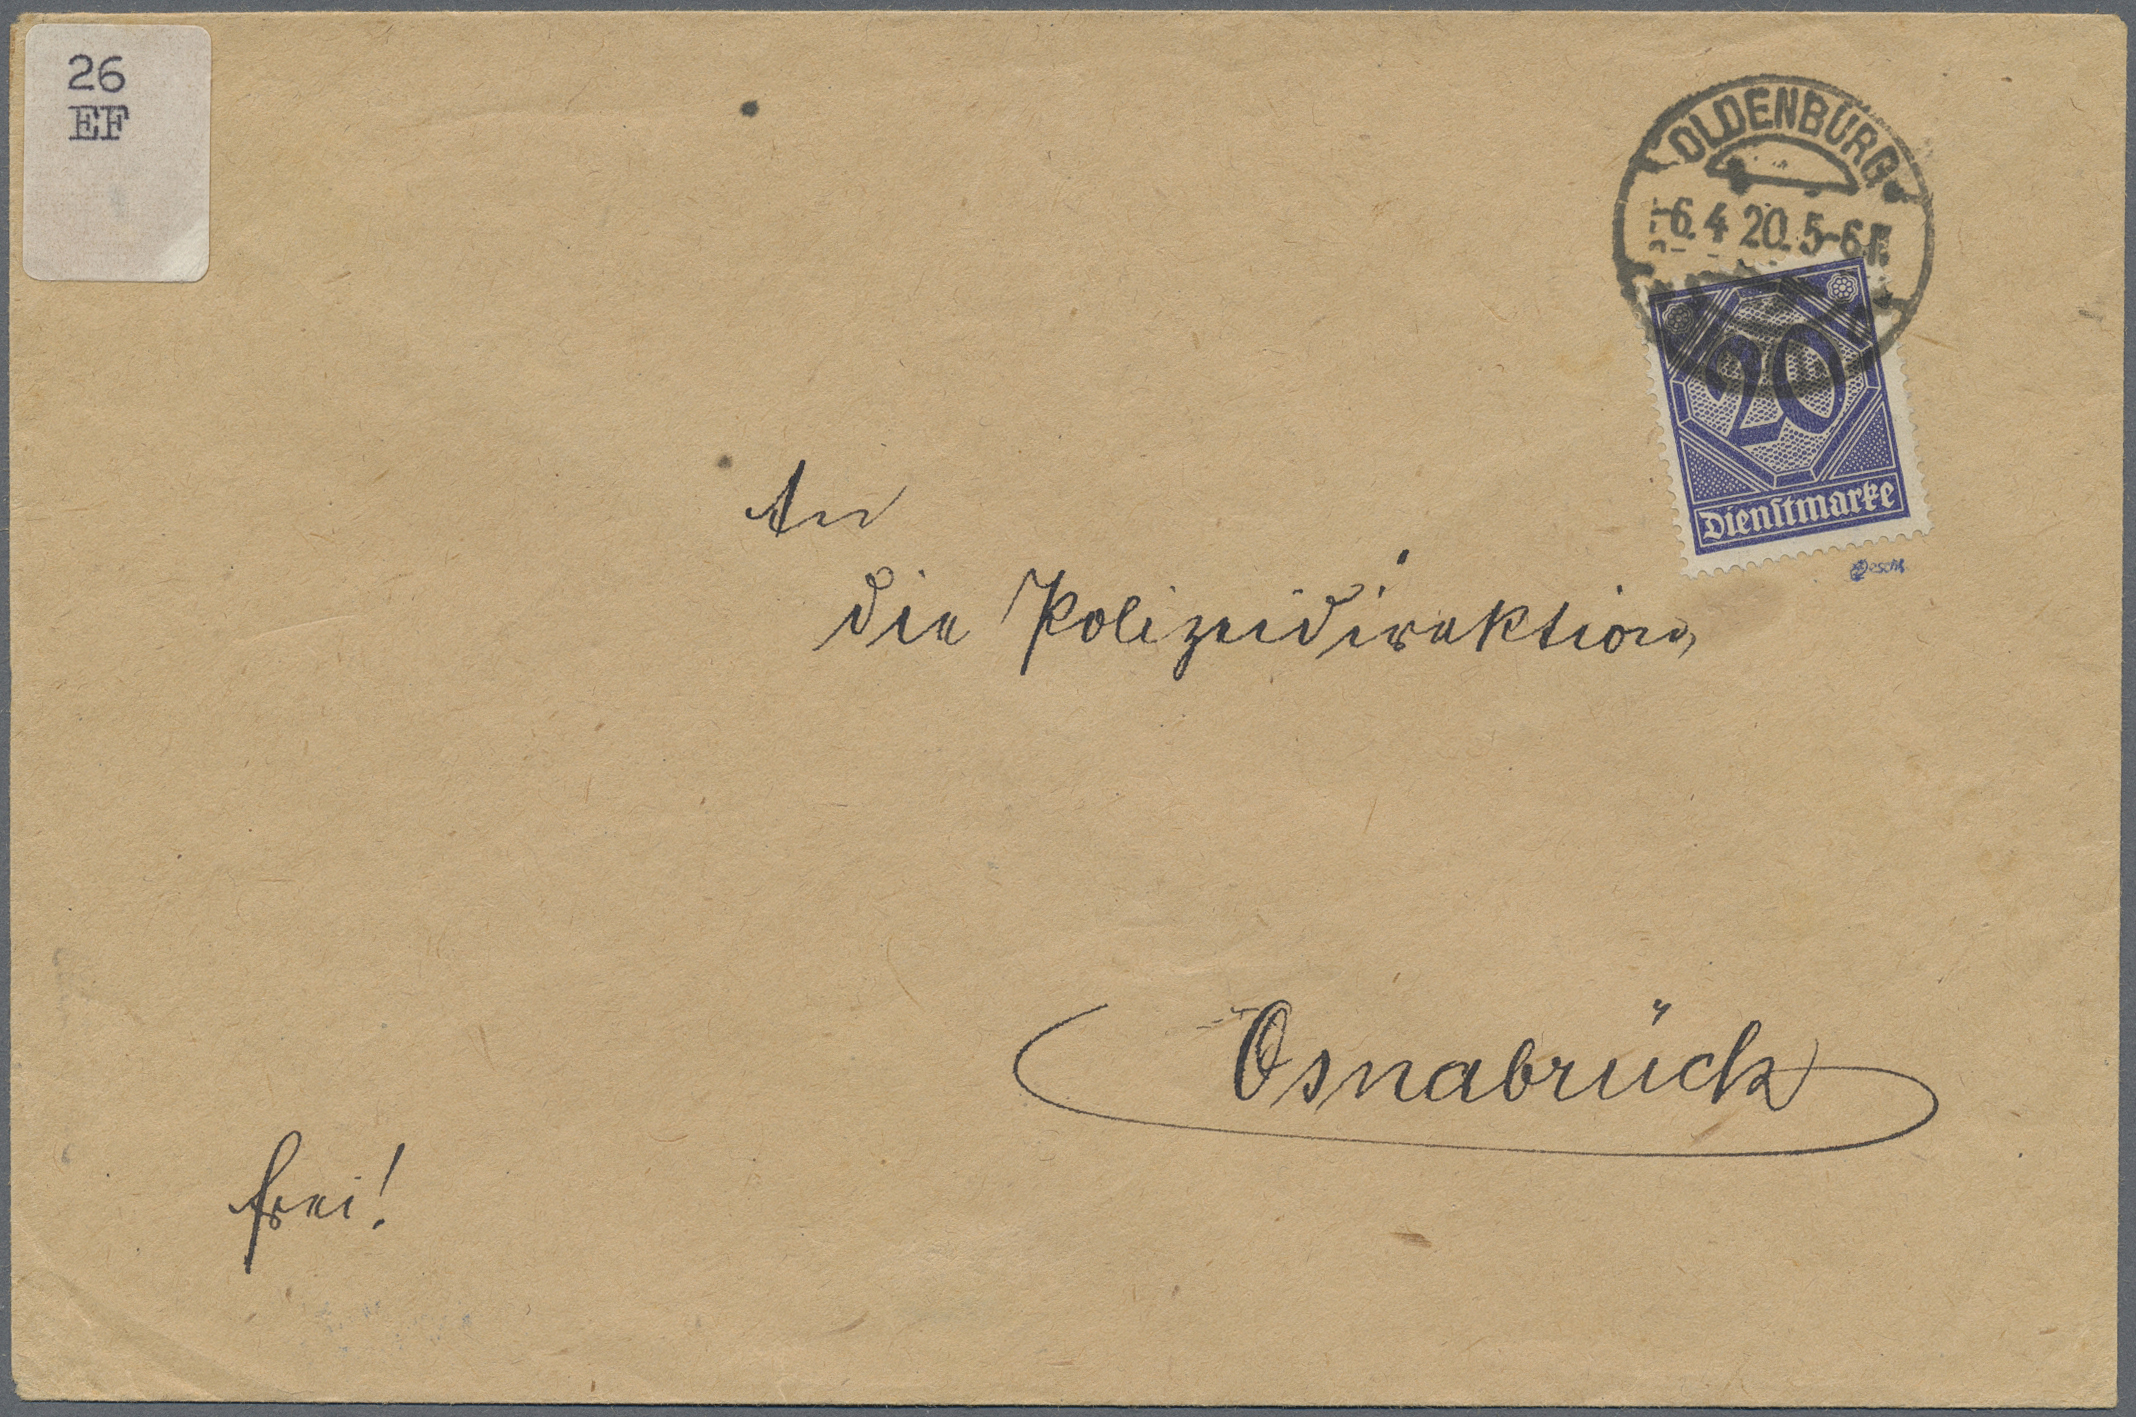 Lot 37049 - Deutsches Reich - Dienstmarken  -  Auktionshaus Christoph Gärtner GmbH & Co. KG Collections Germany,  Collections Supplement, Surprise boxes #39 Day 7